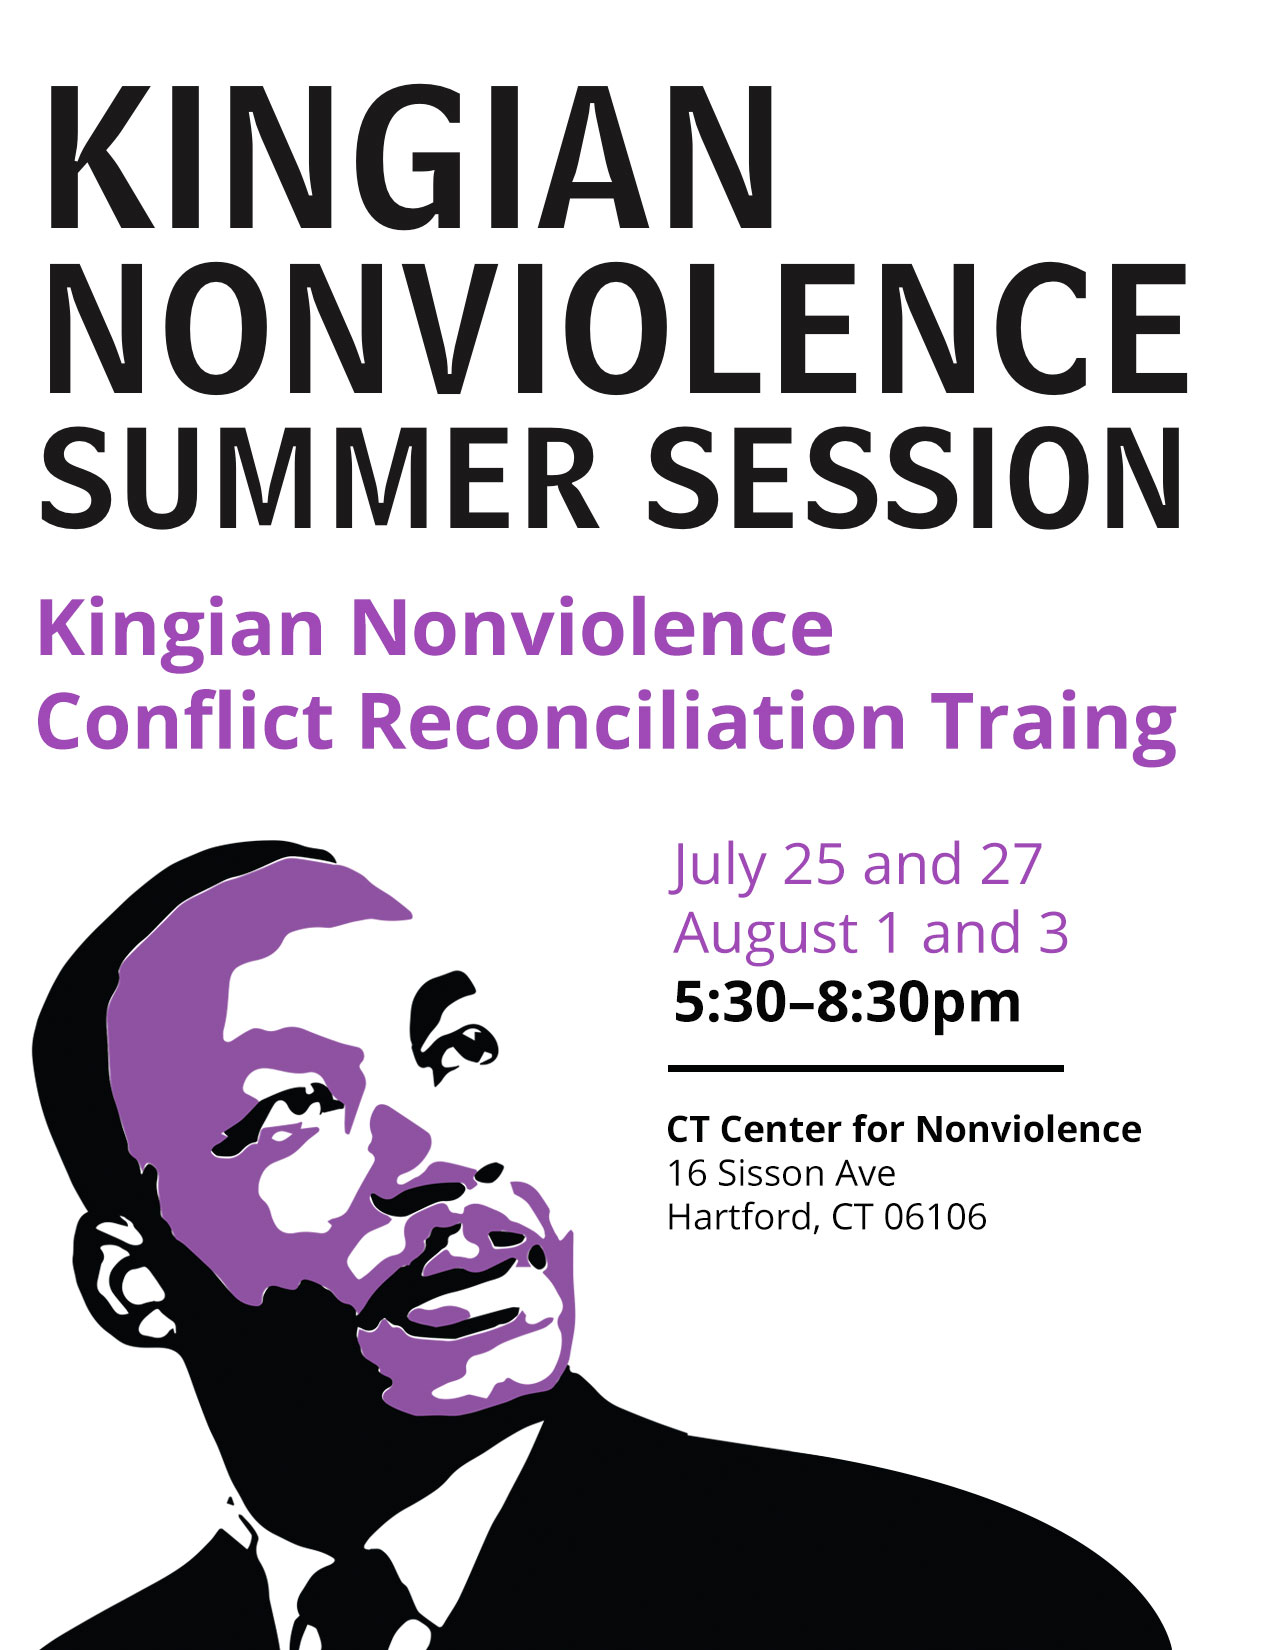 kingian_nonviolence_summer_session_conflict_reconciliation_Training_ct_center_nonviolence